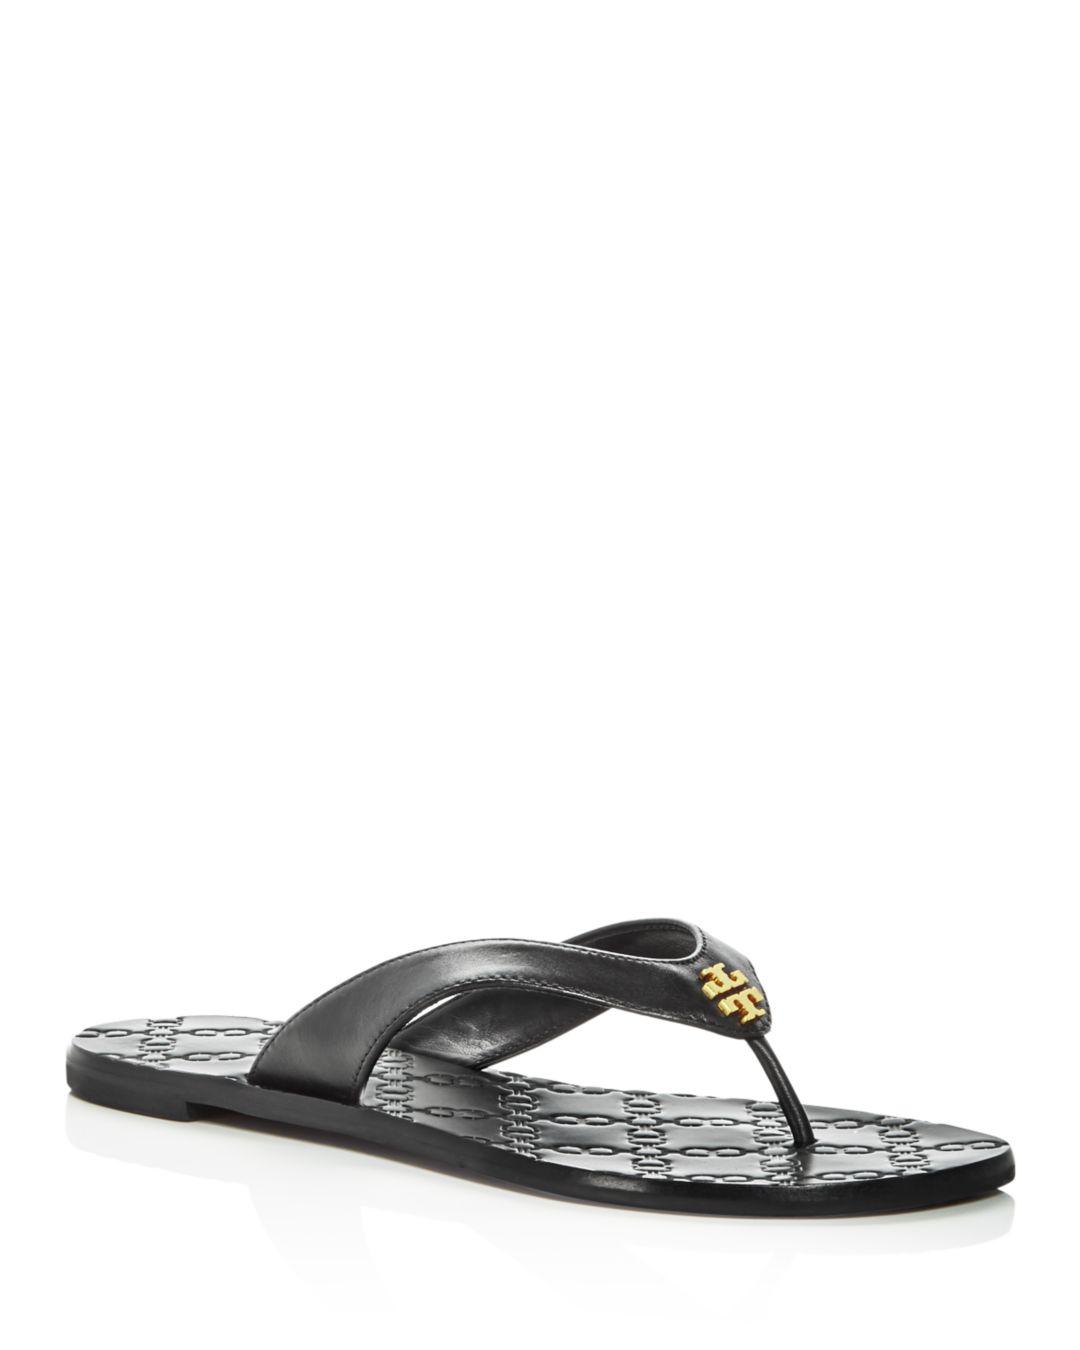 da1b638fbeed Lyst - Tory Burch Women s Monroe Thong Sandals in Black